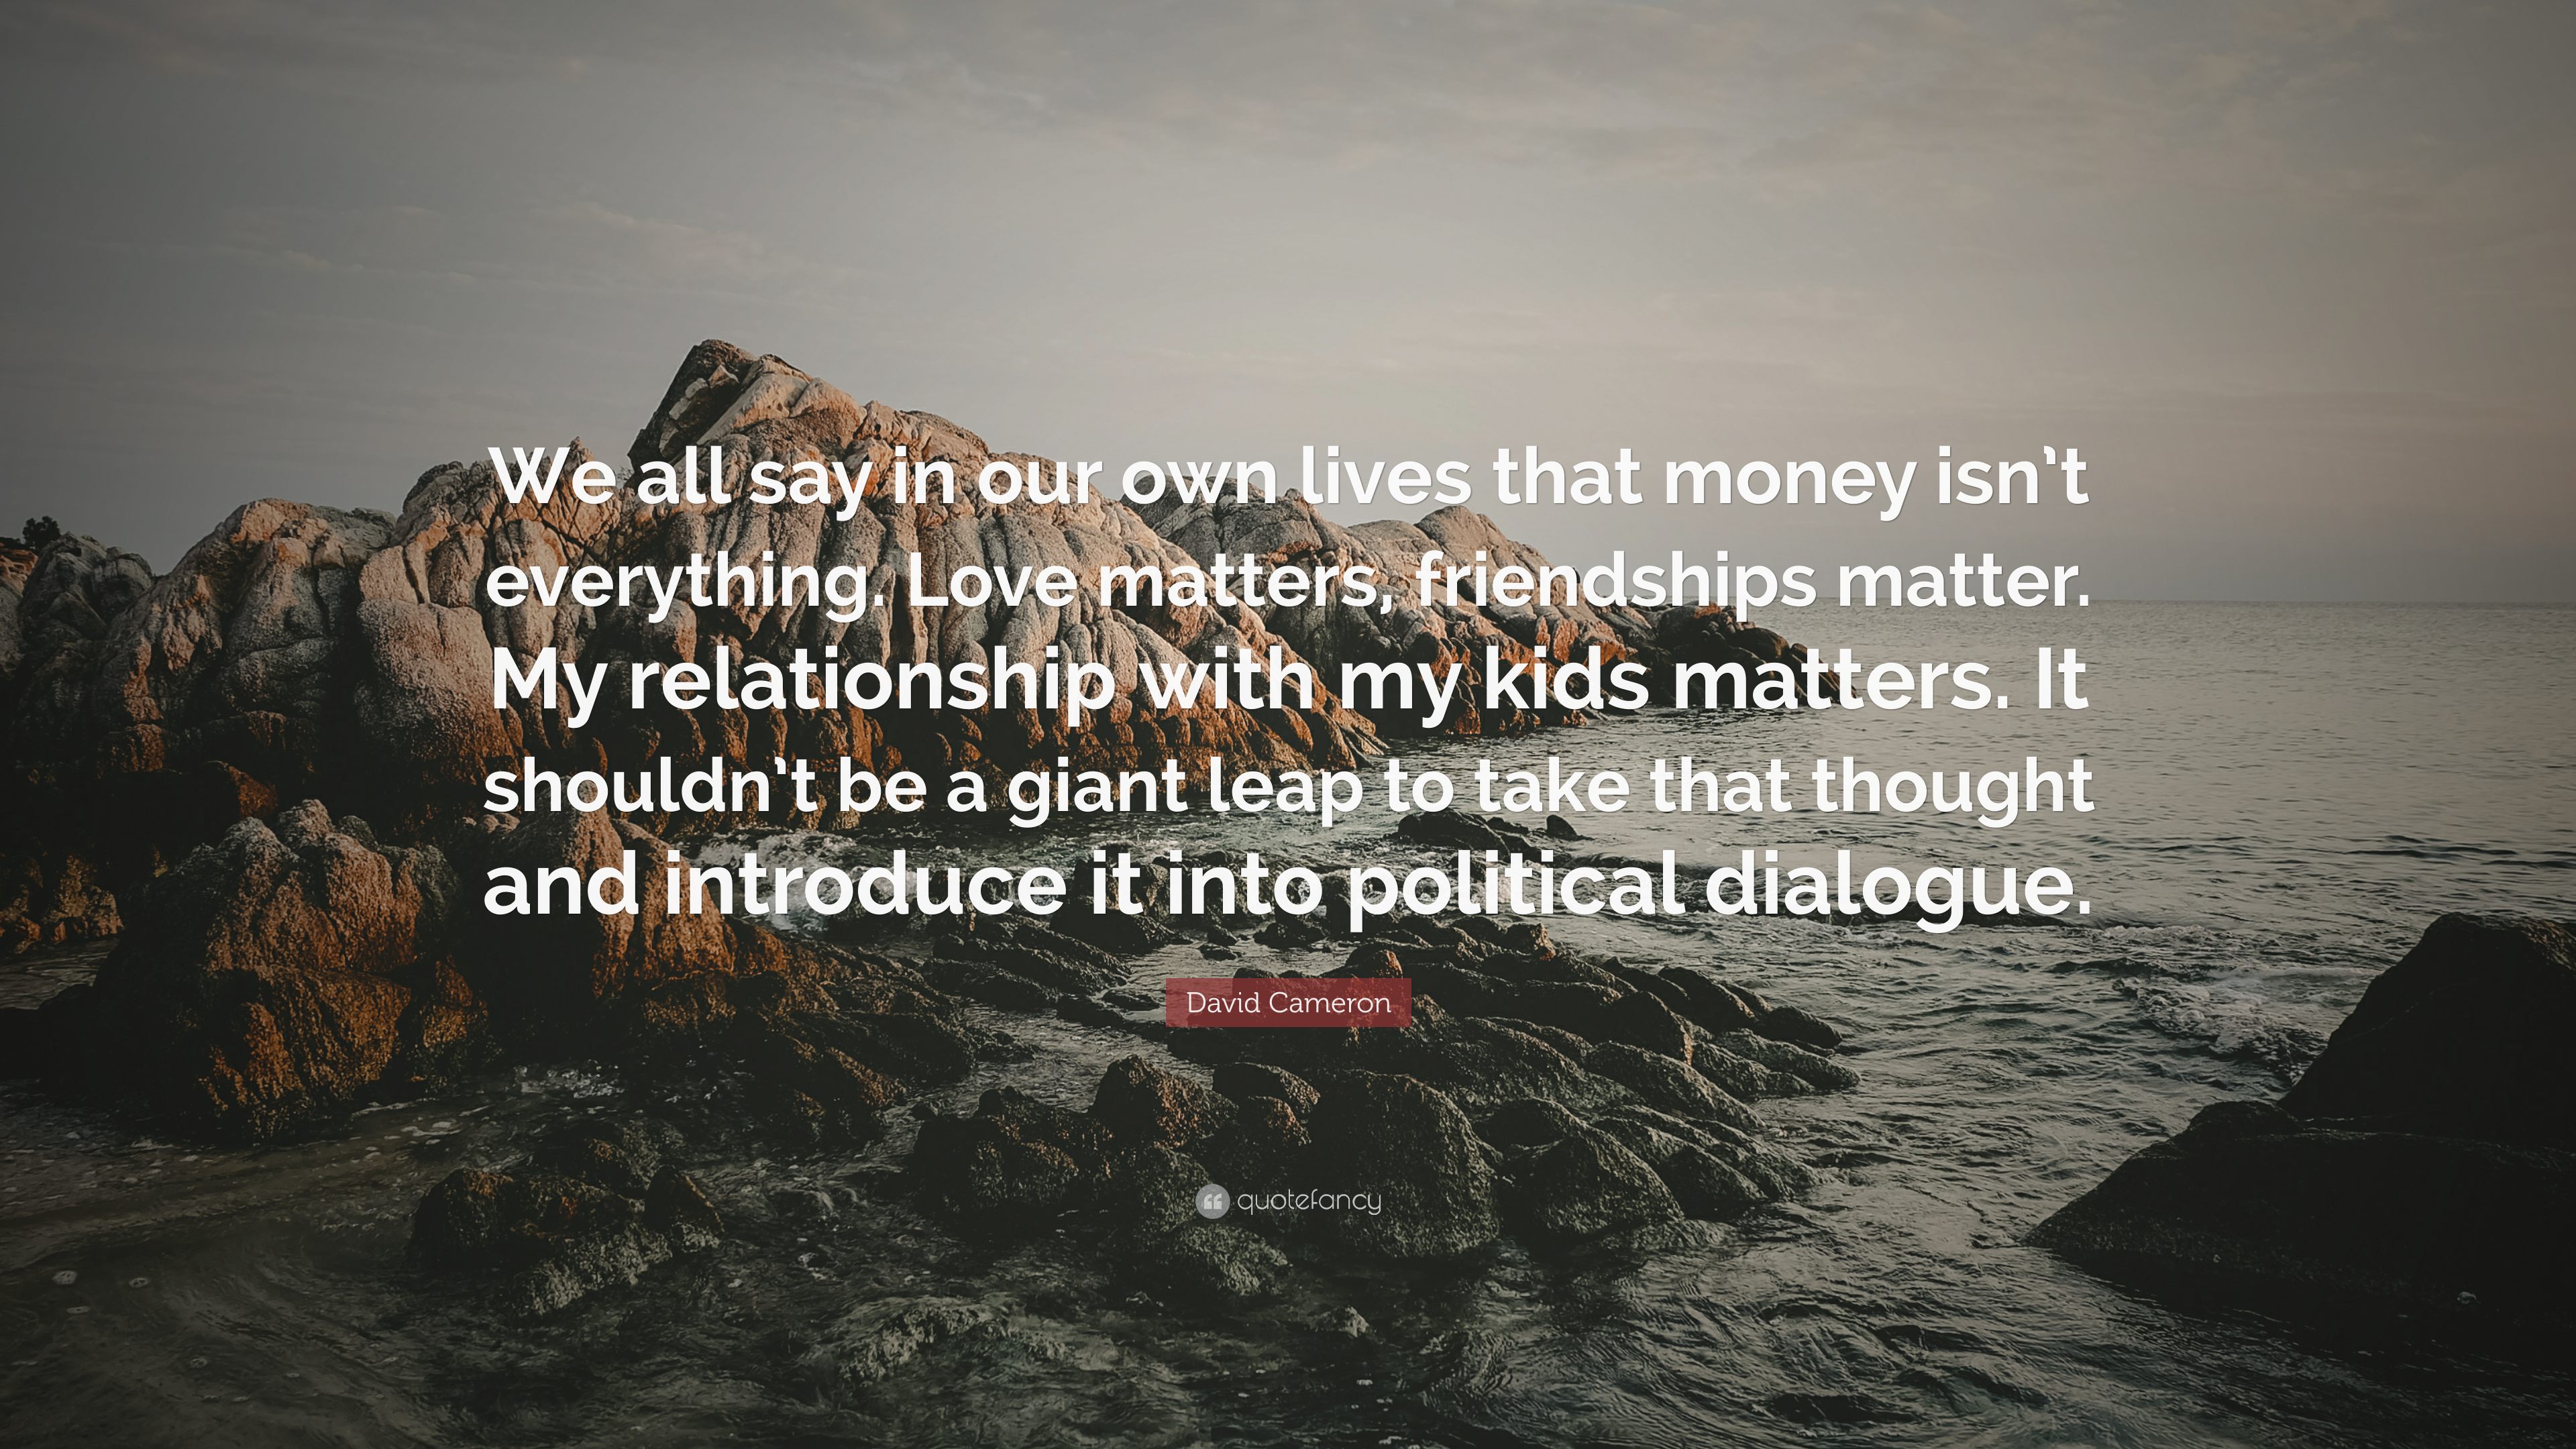 David Cameron Quote We All Say In Our Own Lives That Money Isn T Everything Love Matters Friendships Matter My Relationship With My Kids 7 Wallpapers Quotefancy